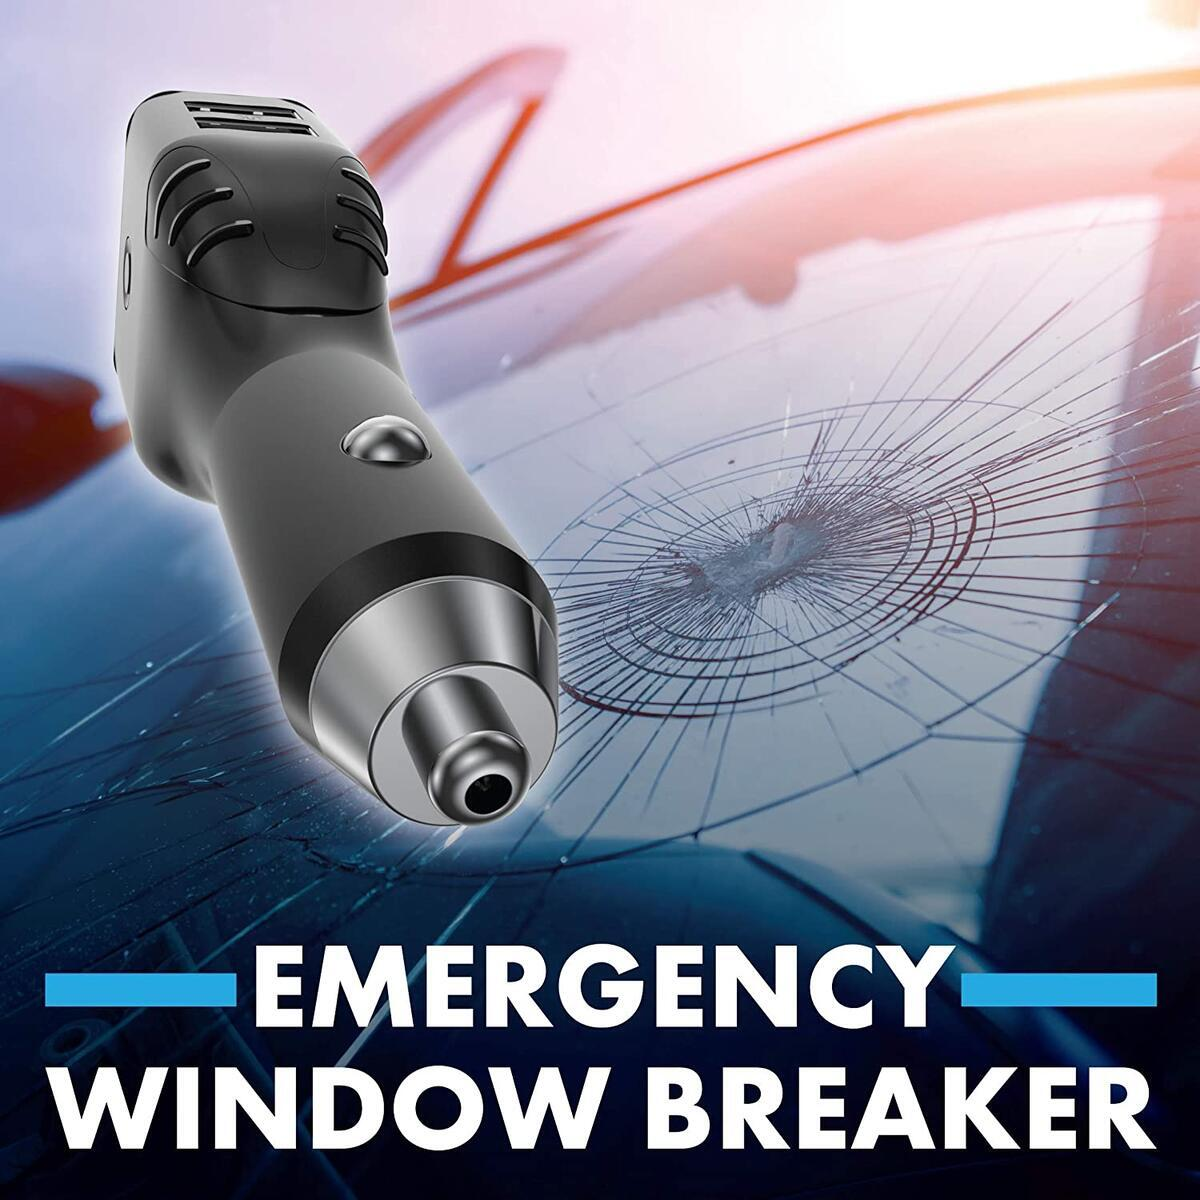 Emergency 6-in1 Car Safety Device USB Car Charger Window Breaker Seat Belt Cutter 2200mAh Power Bank Powerful LED Flashlight with Red Emergency Beacon